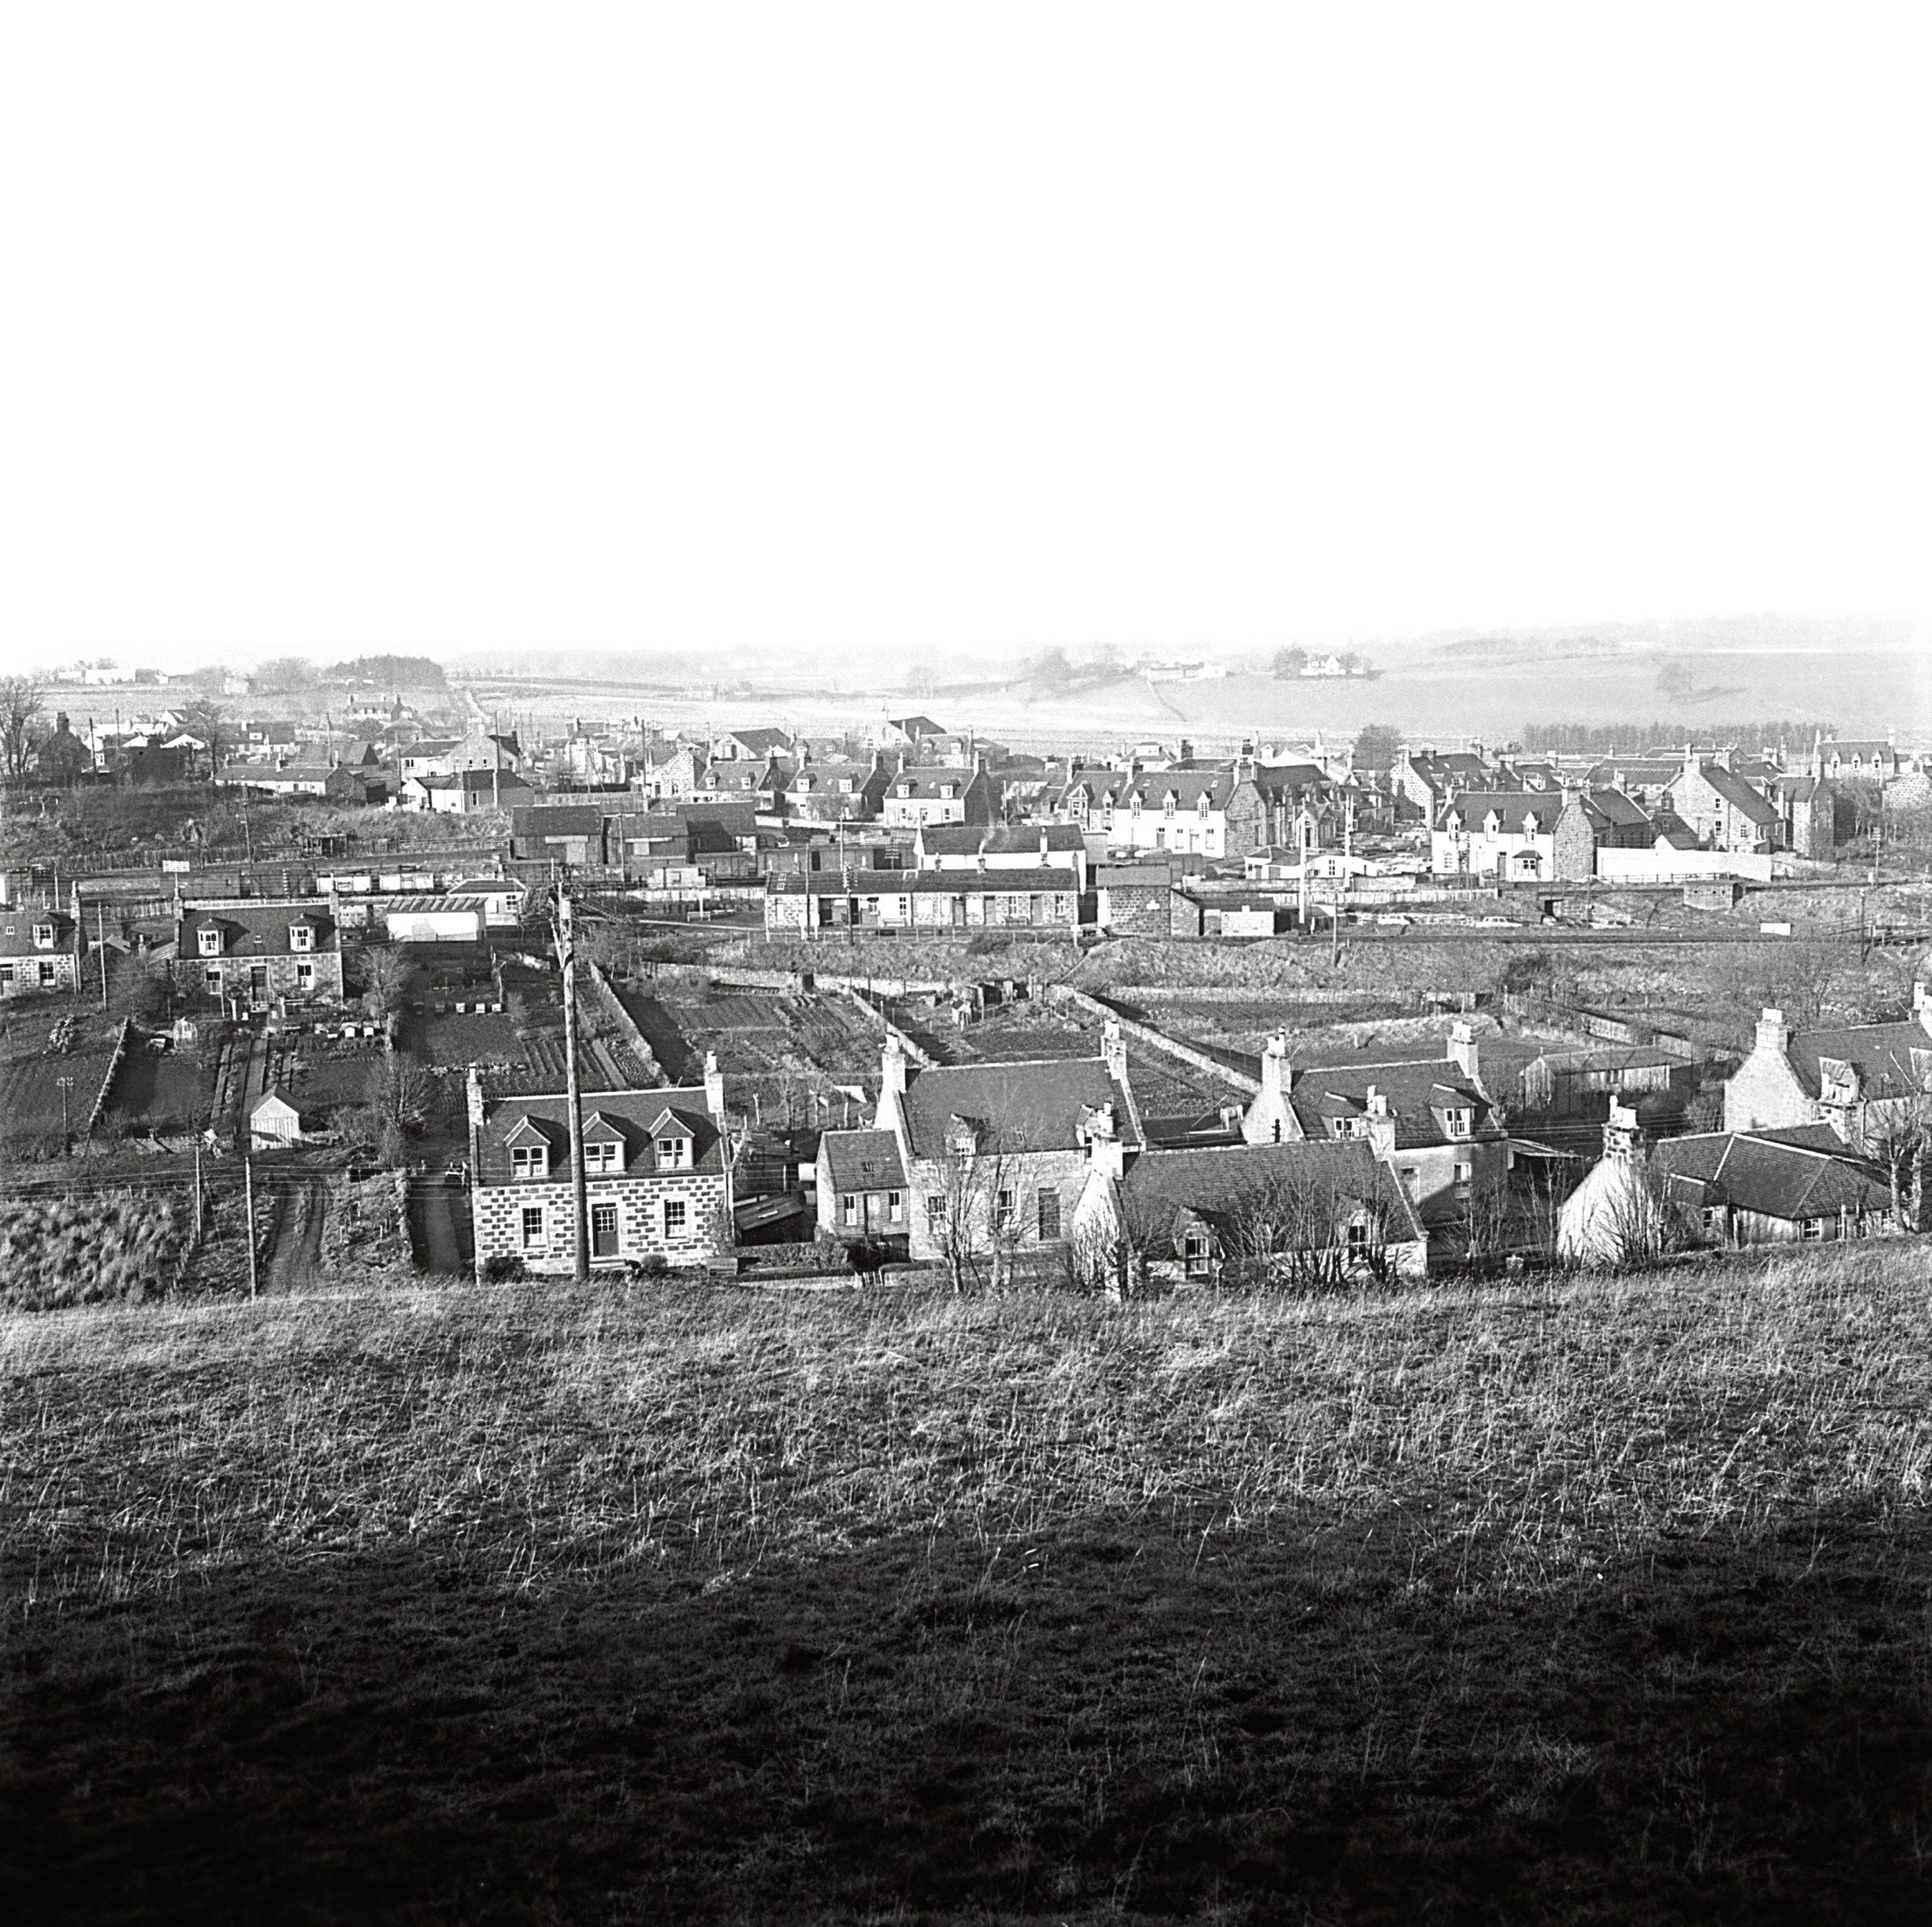 1963: The railway junction and village that grew up around it, seen in the 1960s